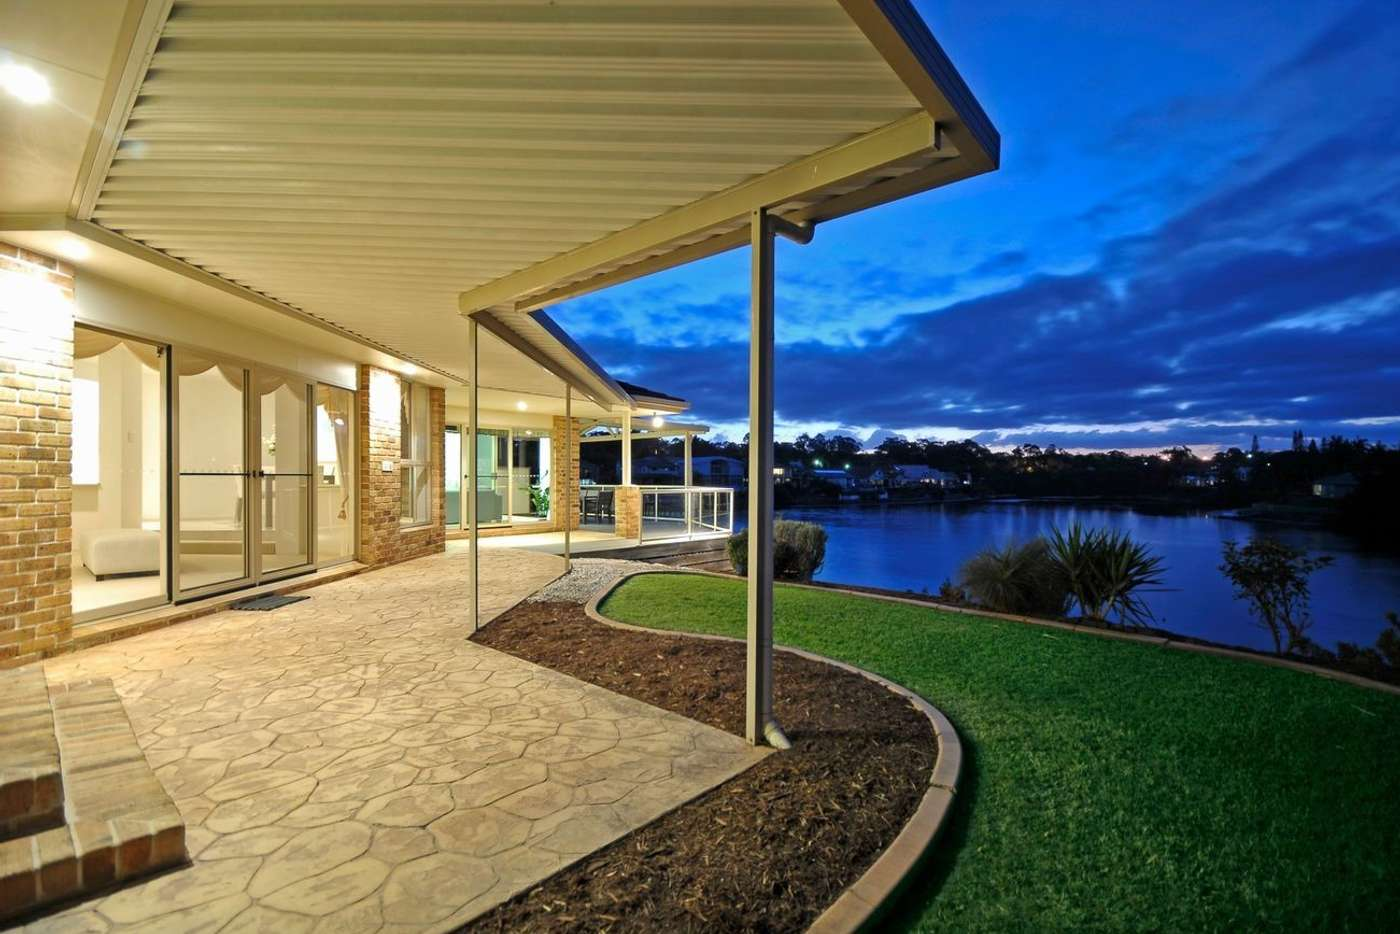 Main view of Homely house listing, 26 Mornington Terrace, Robina QLD 4226